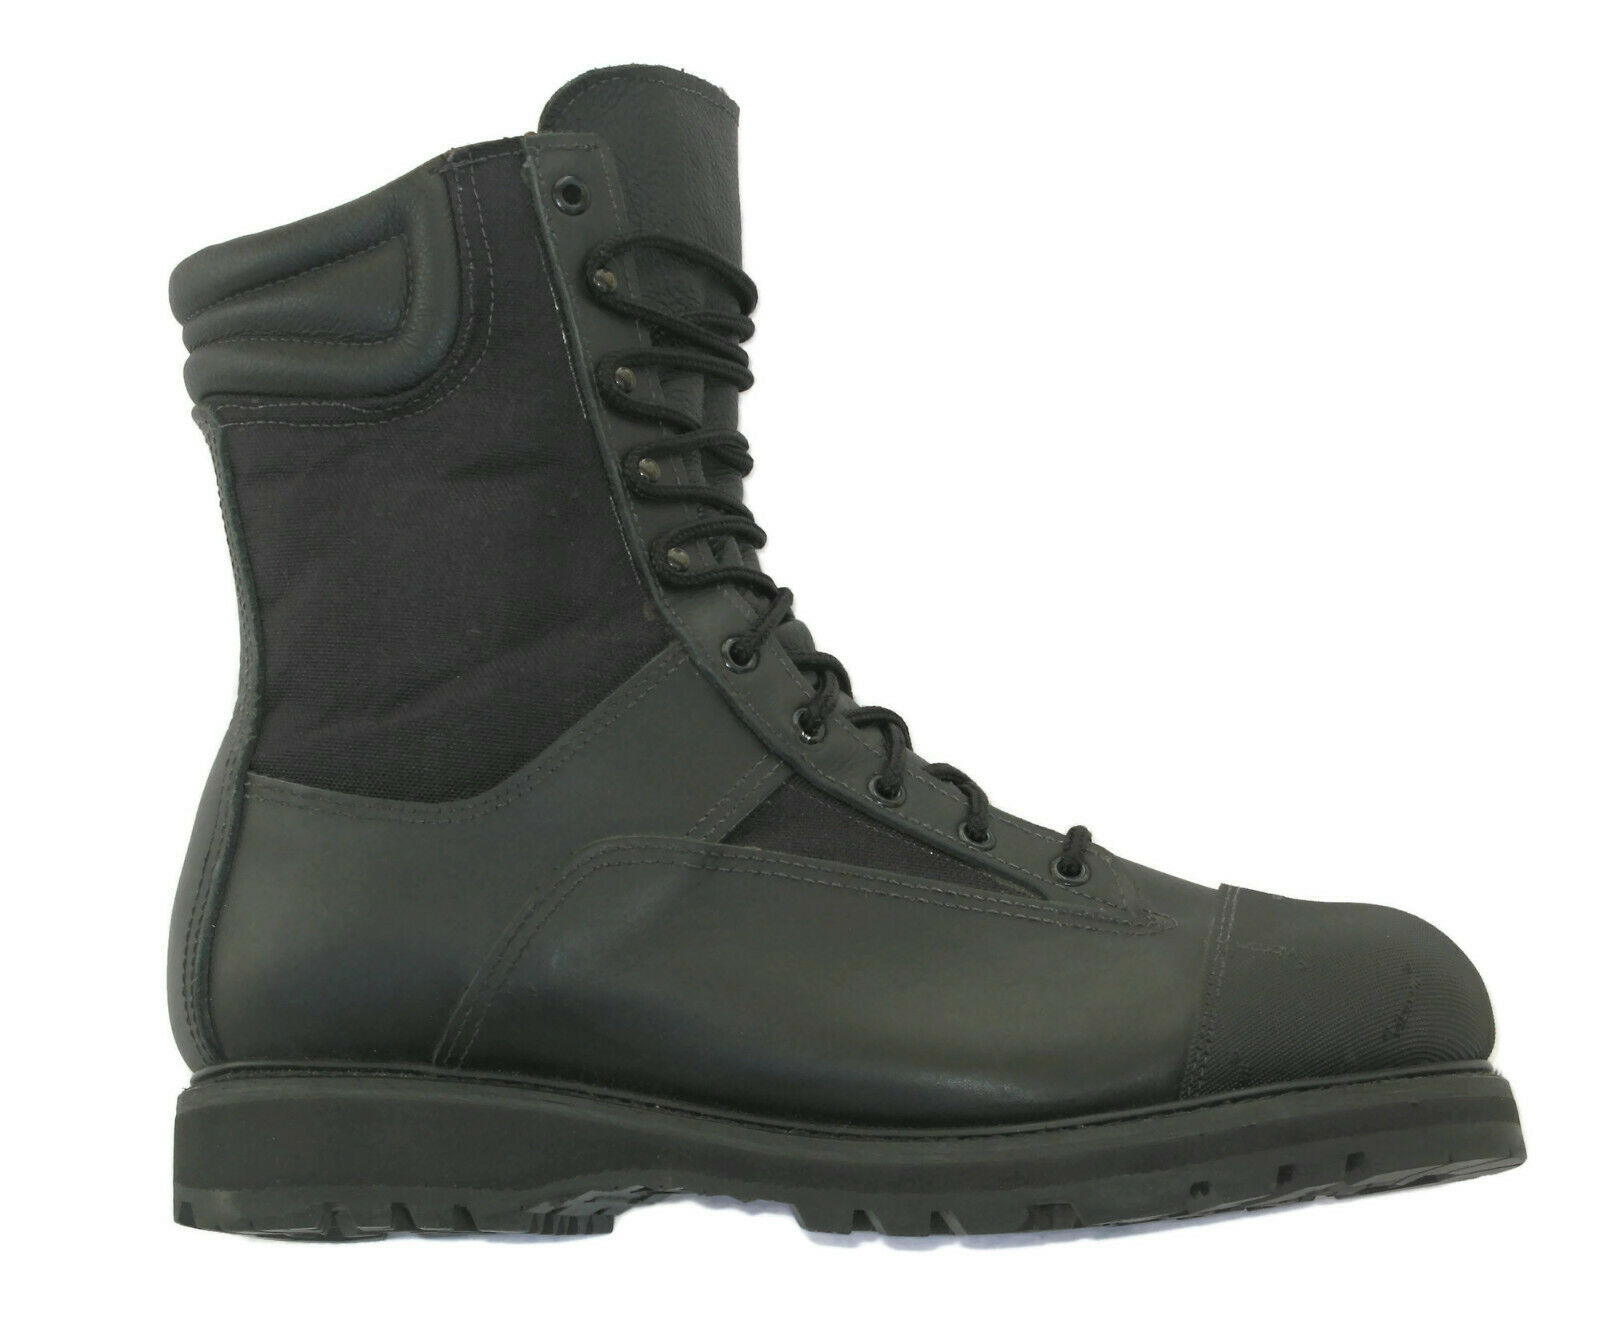 All American Boot Co Hvy Duty Work Motorcycle Police boot Sz 10 EE Steel Toe NEW